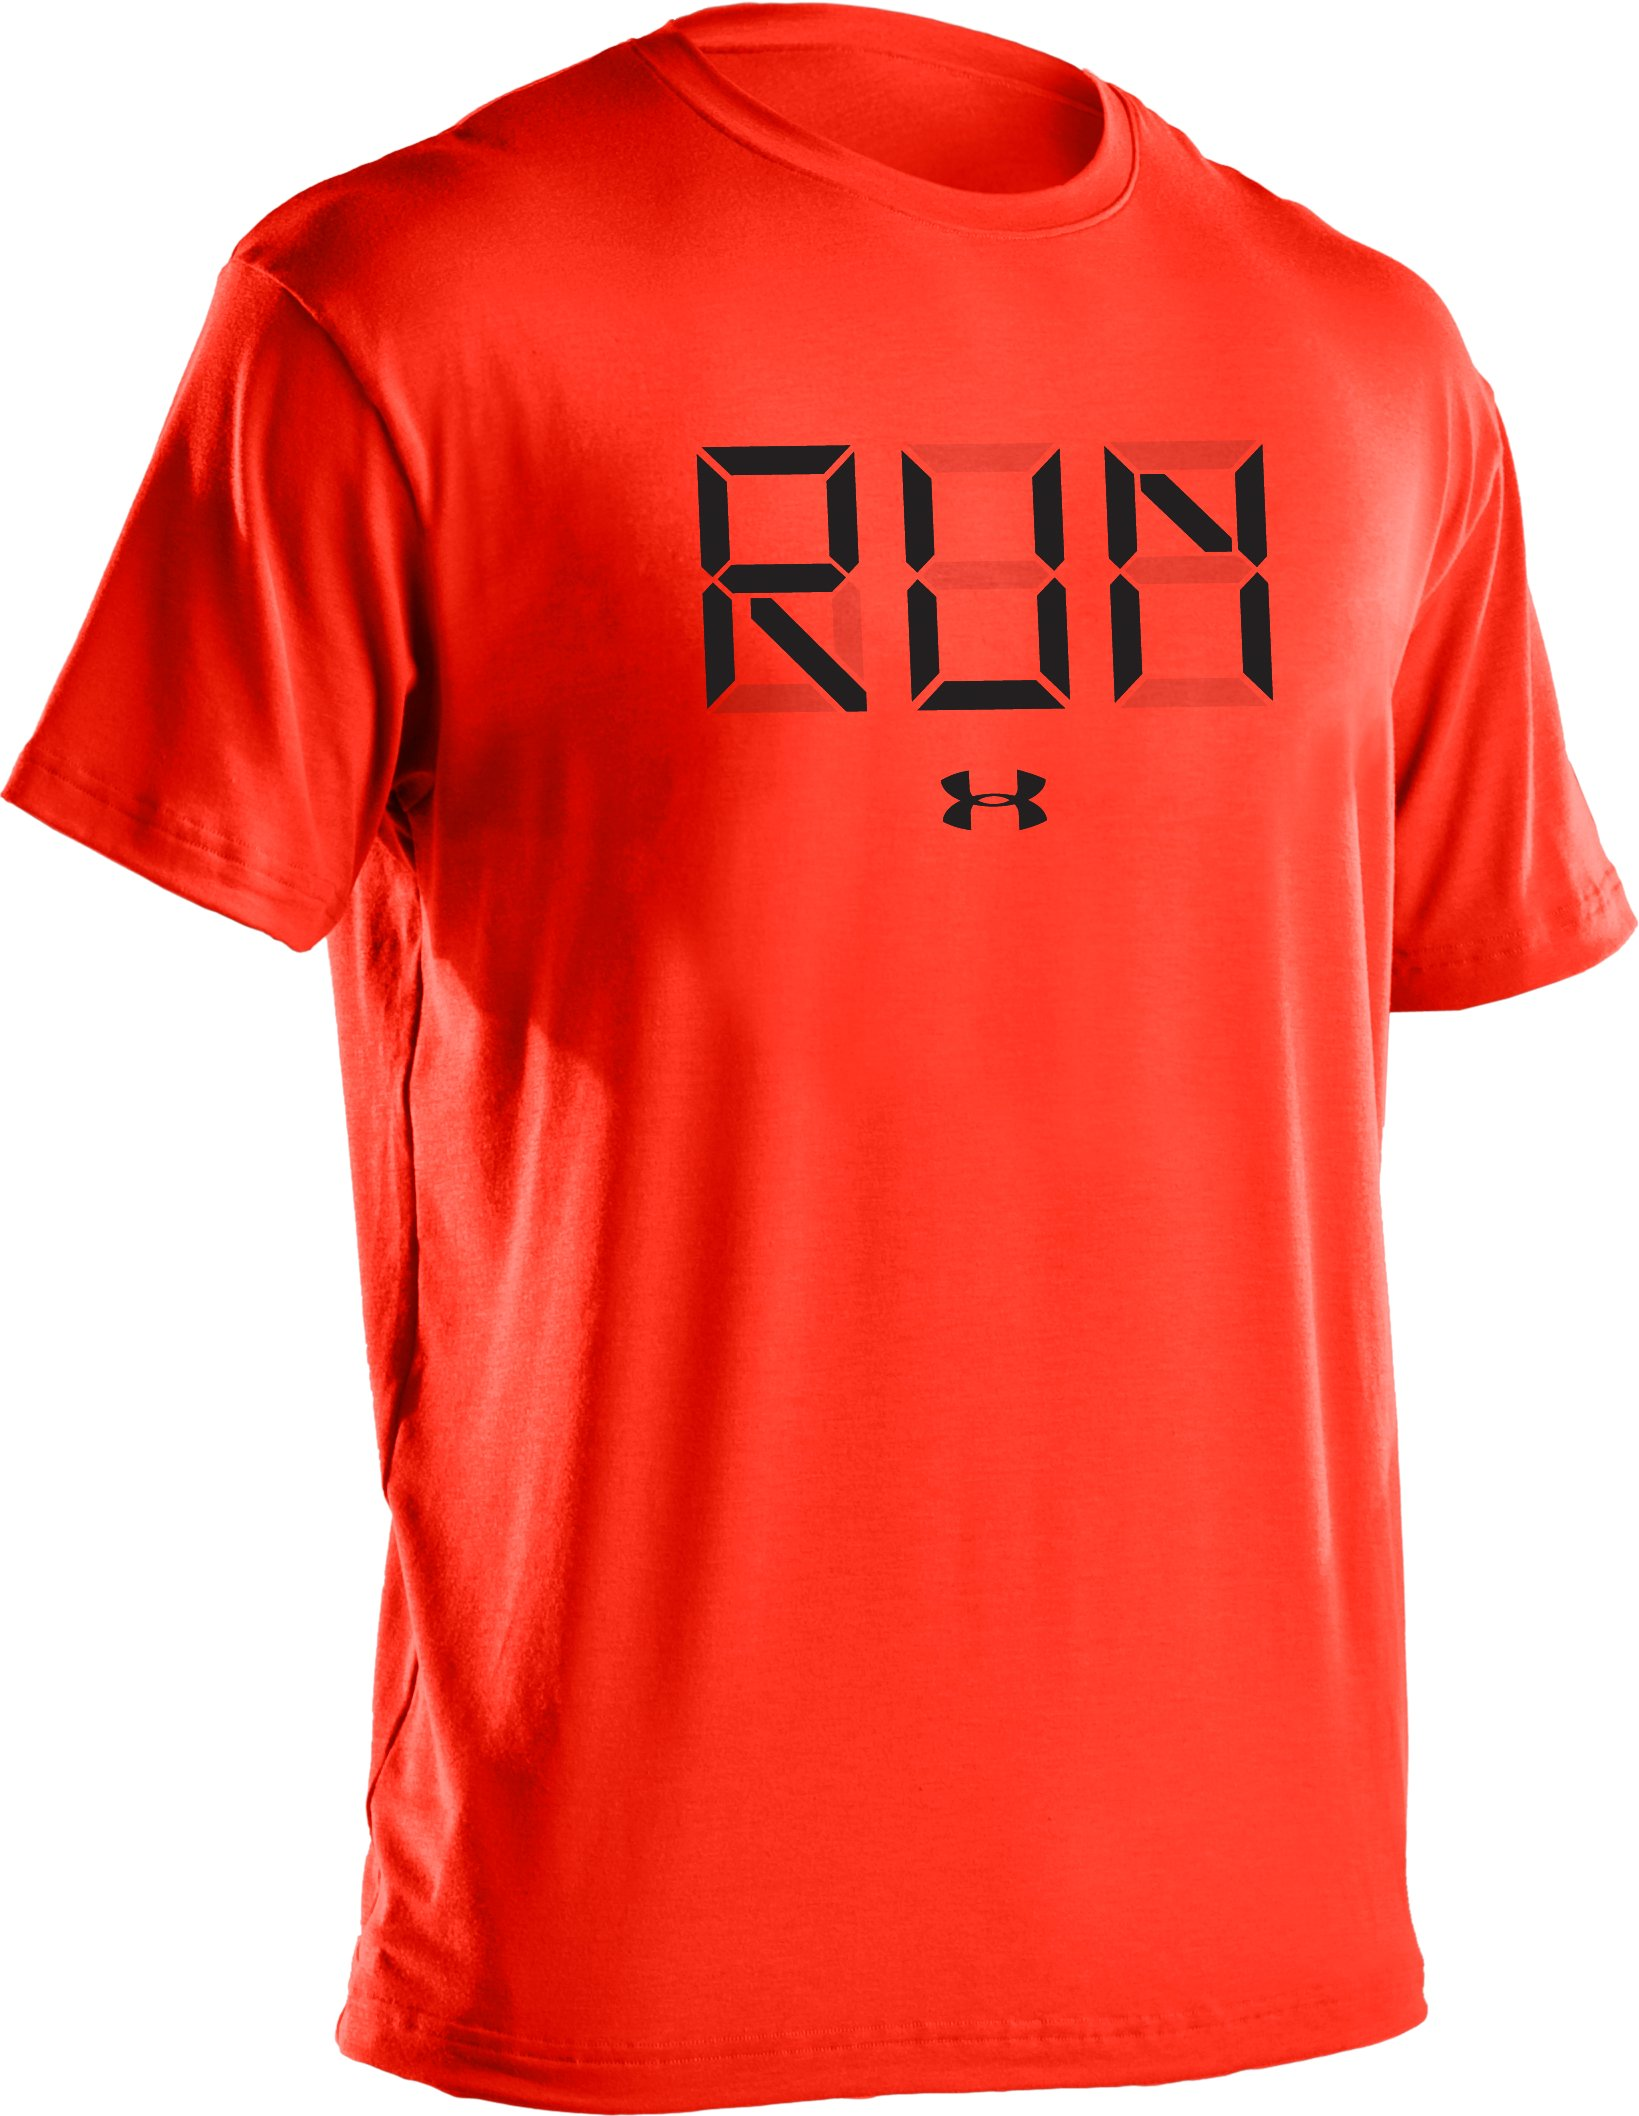 Men's UA Run Digital Graphic T-Shirt, Fuego